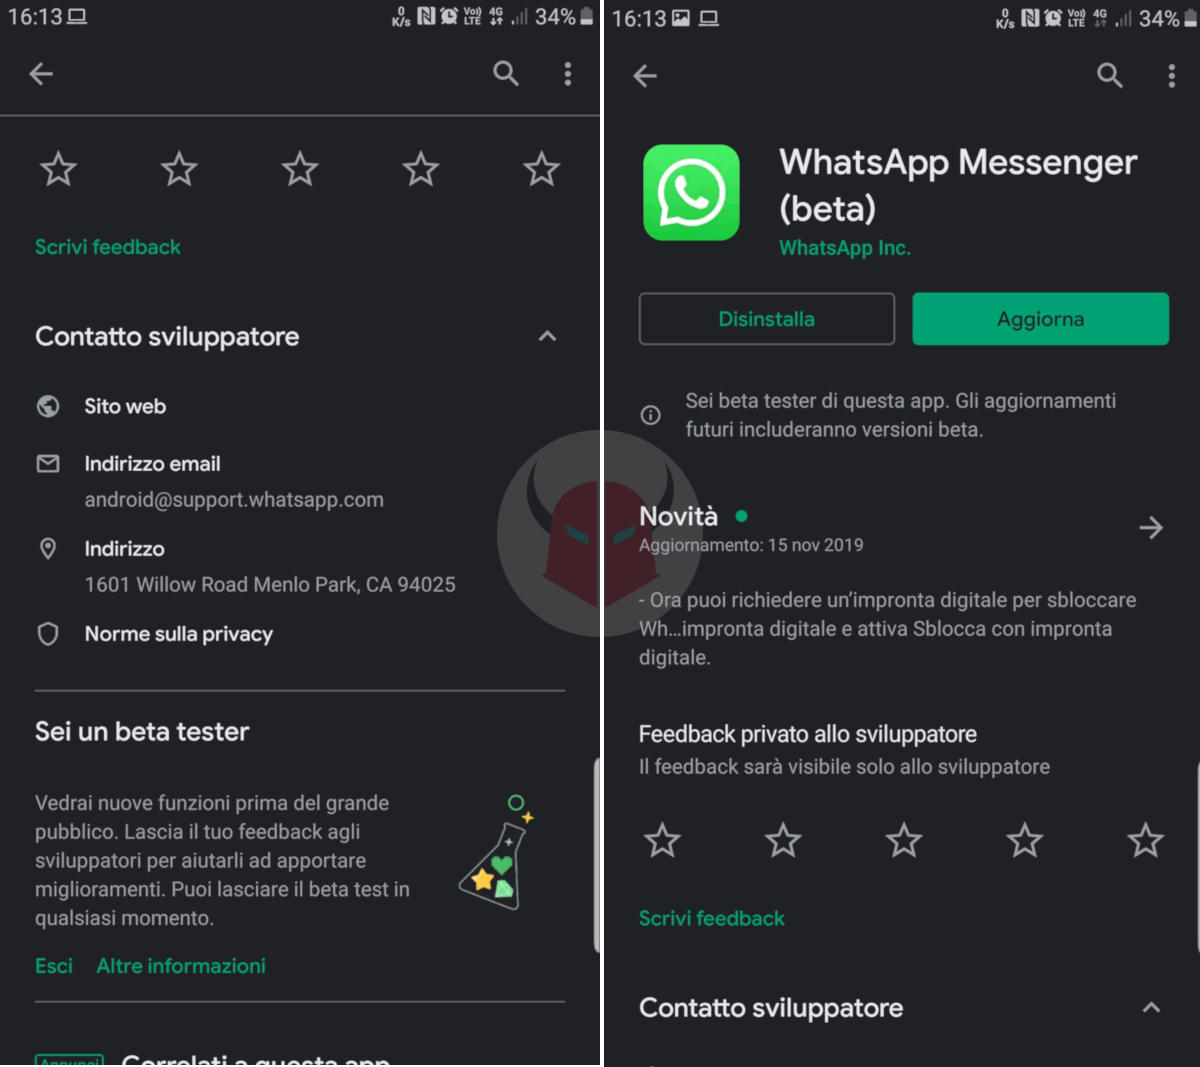 come diventare un beta tester di WhatsApp Android Google Play